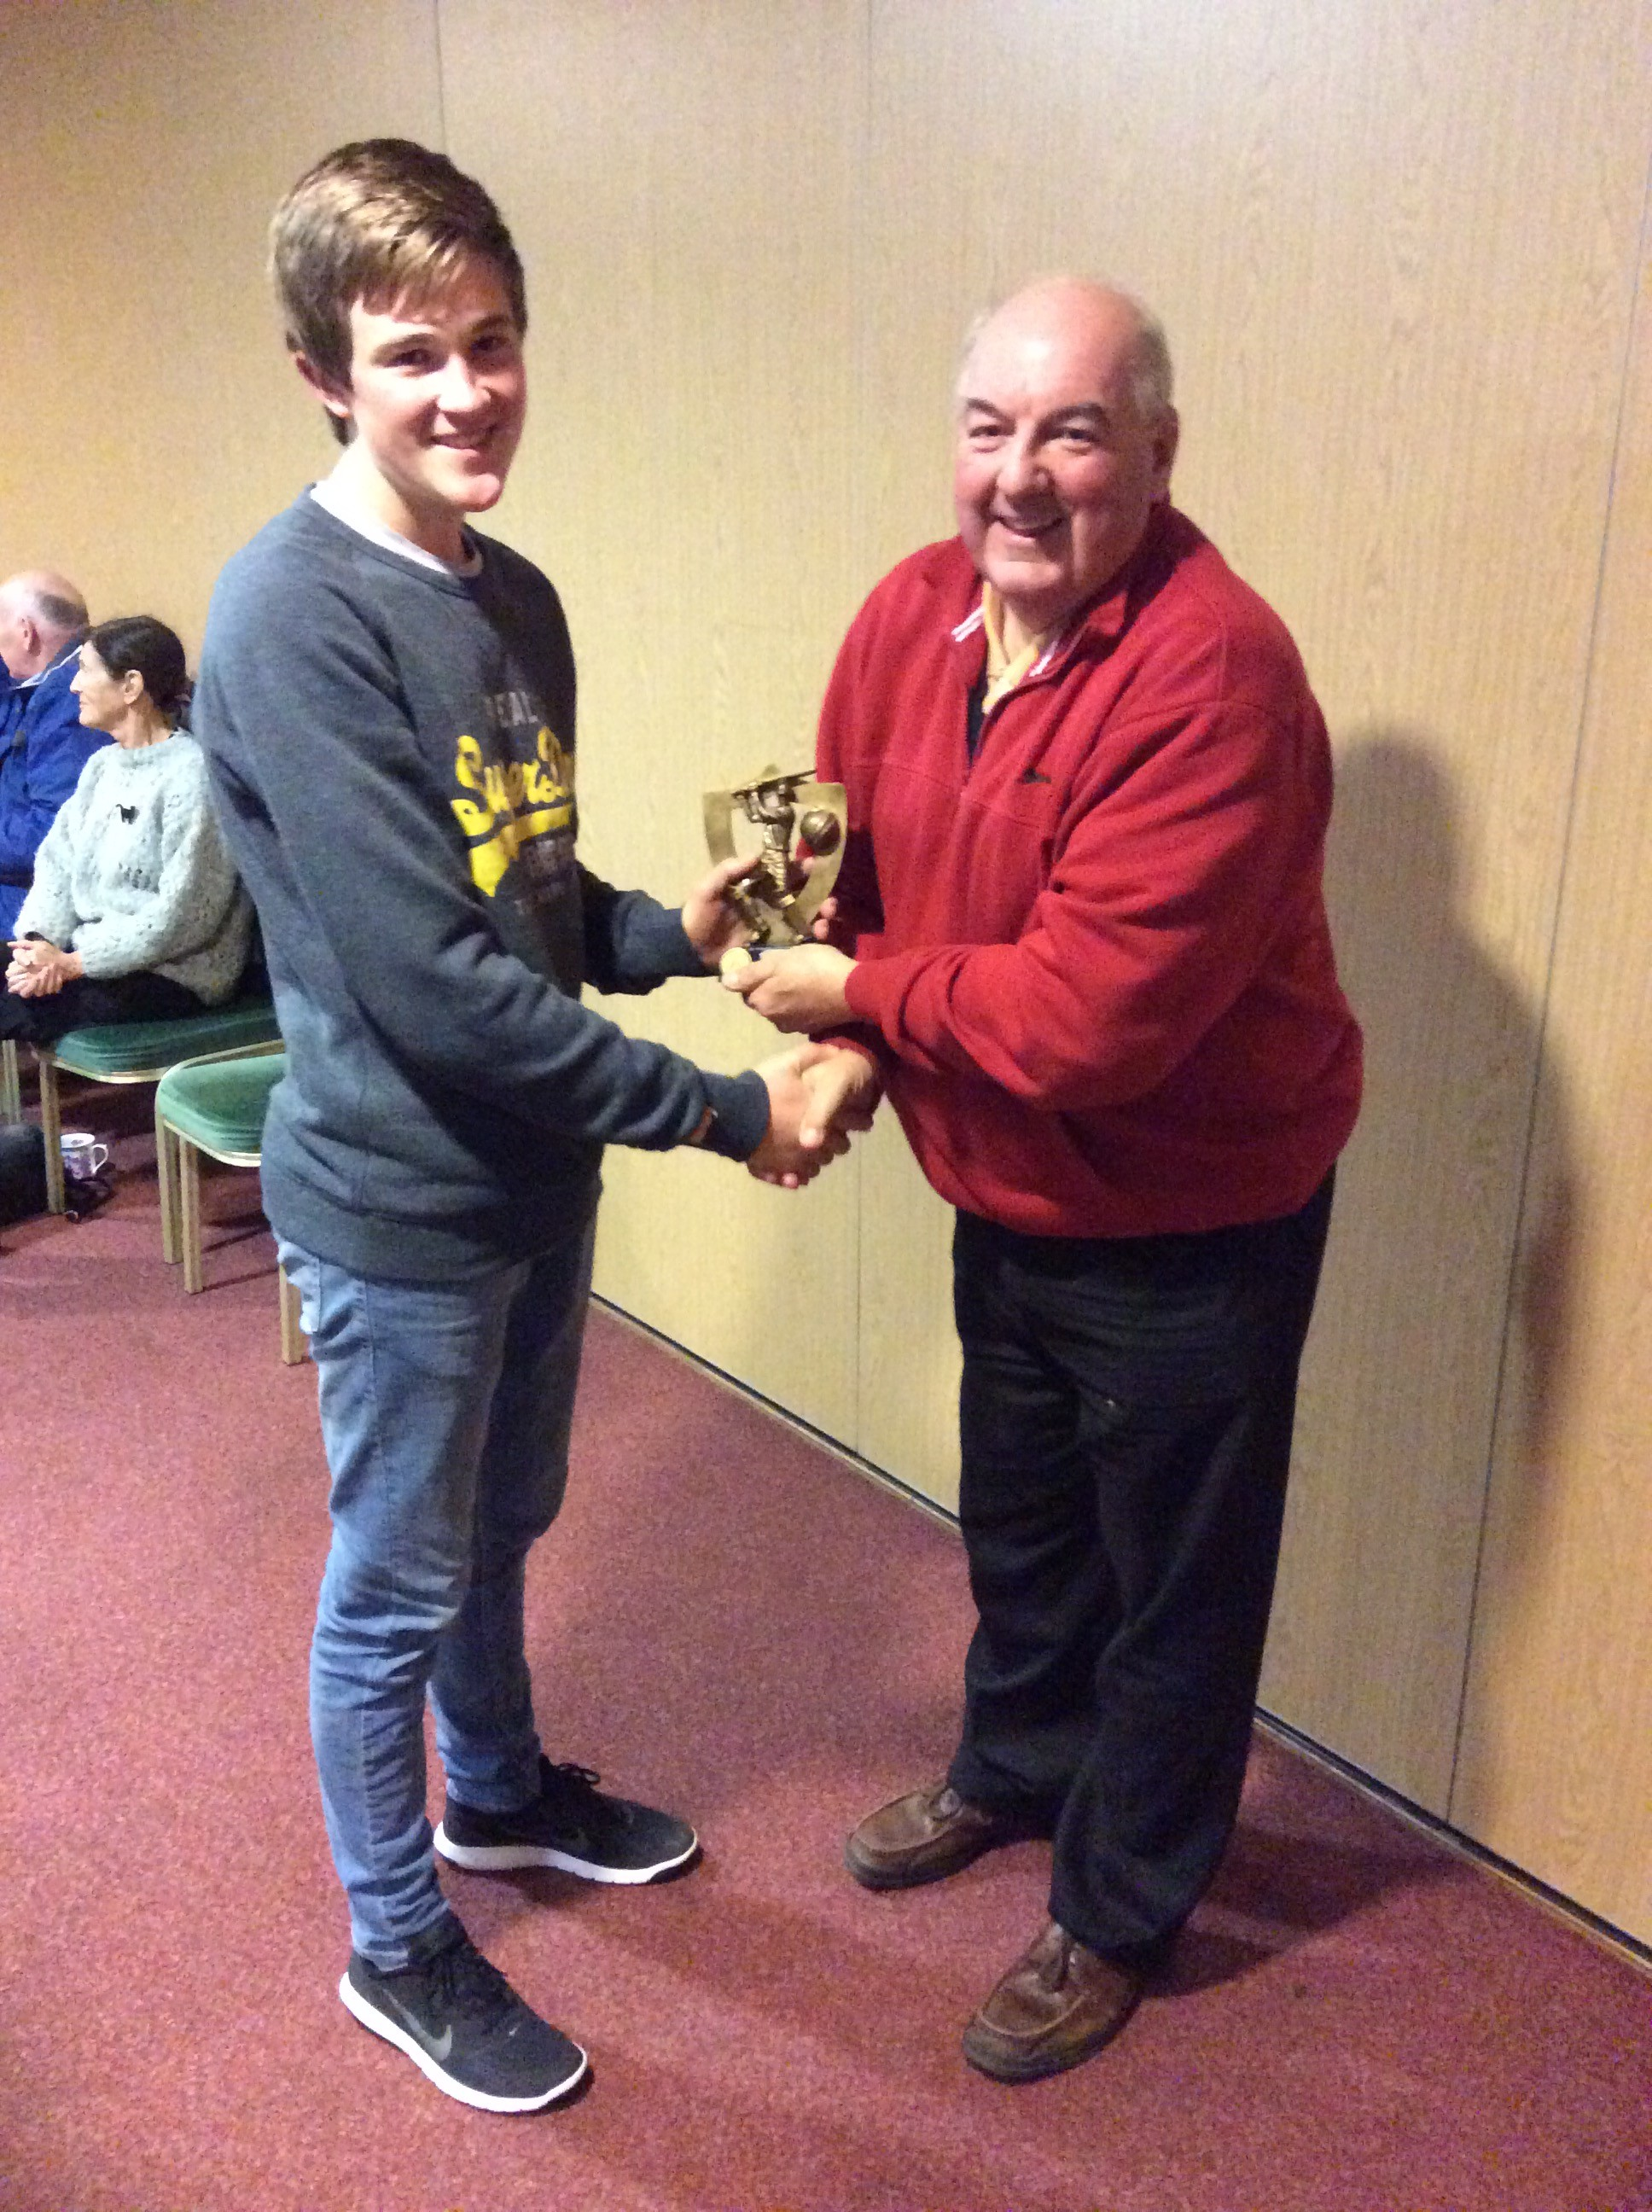 2015 2nd XI Player of the Year - Jono Sparks receives his award from the Club Chairman